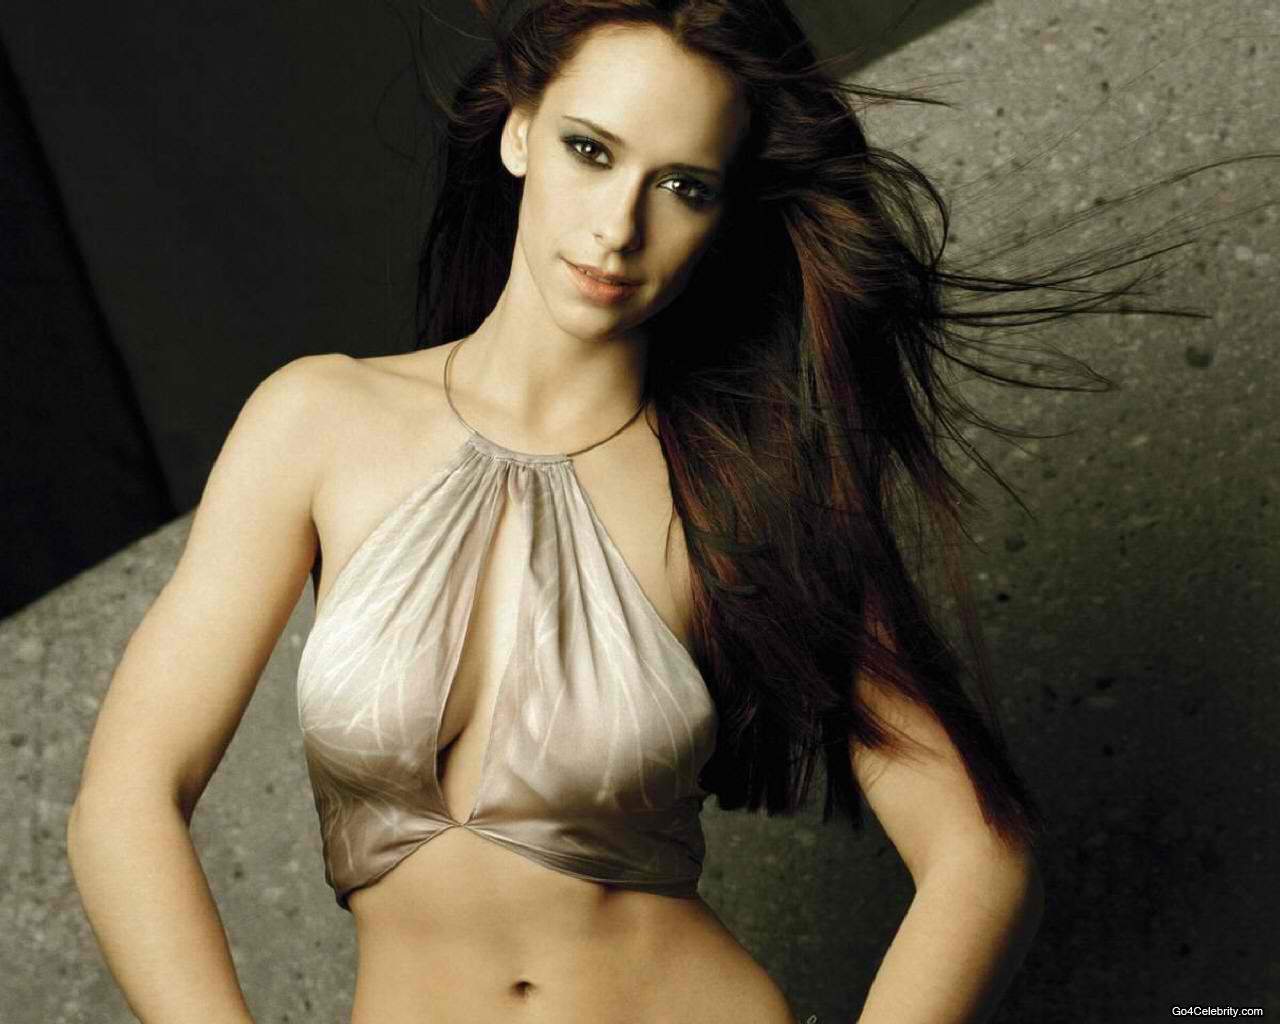 Wallpaper For Hot Love : Jennifer Love Hewitt Wallpaper, Bikini Picture, Sexy Lingerie Photo and Hot Images Download